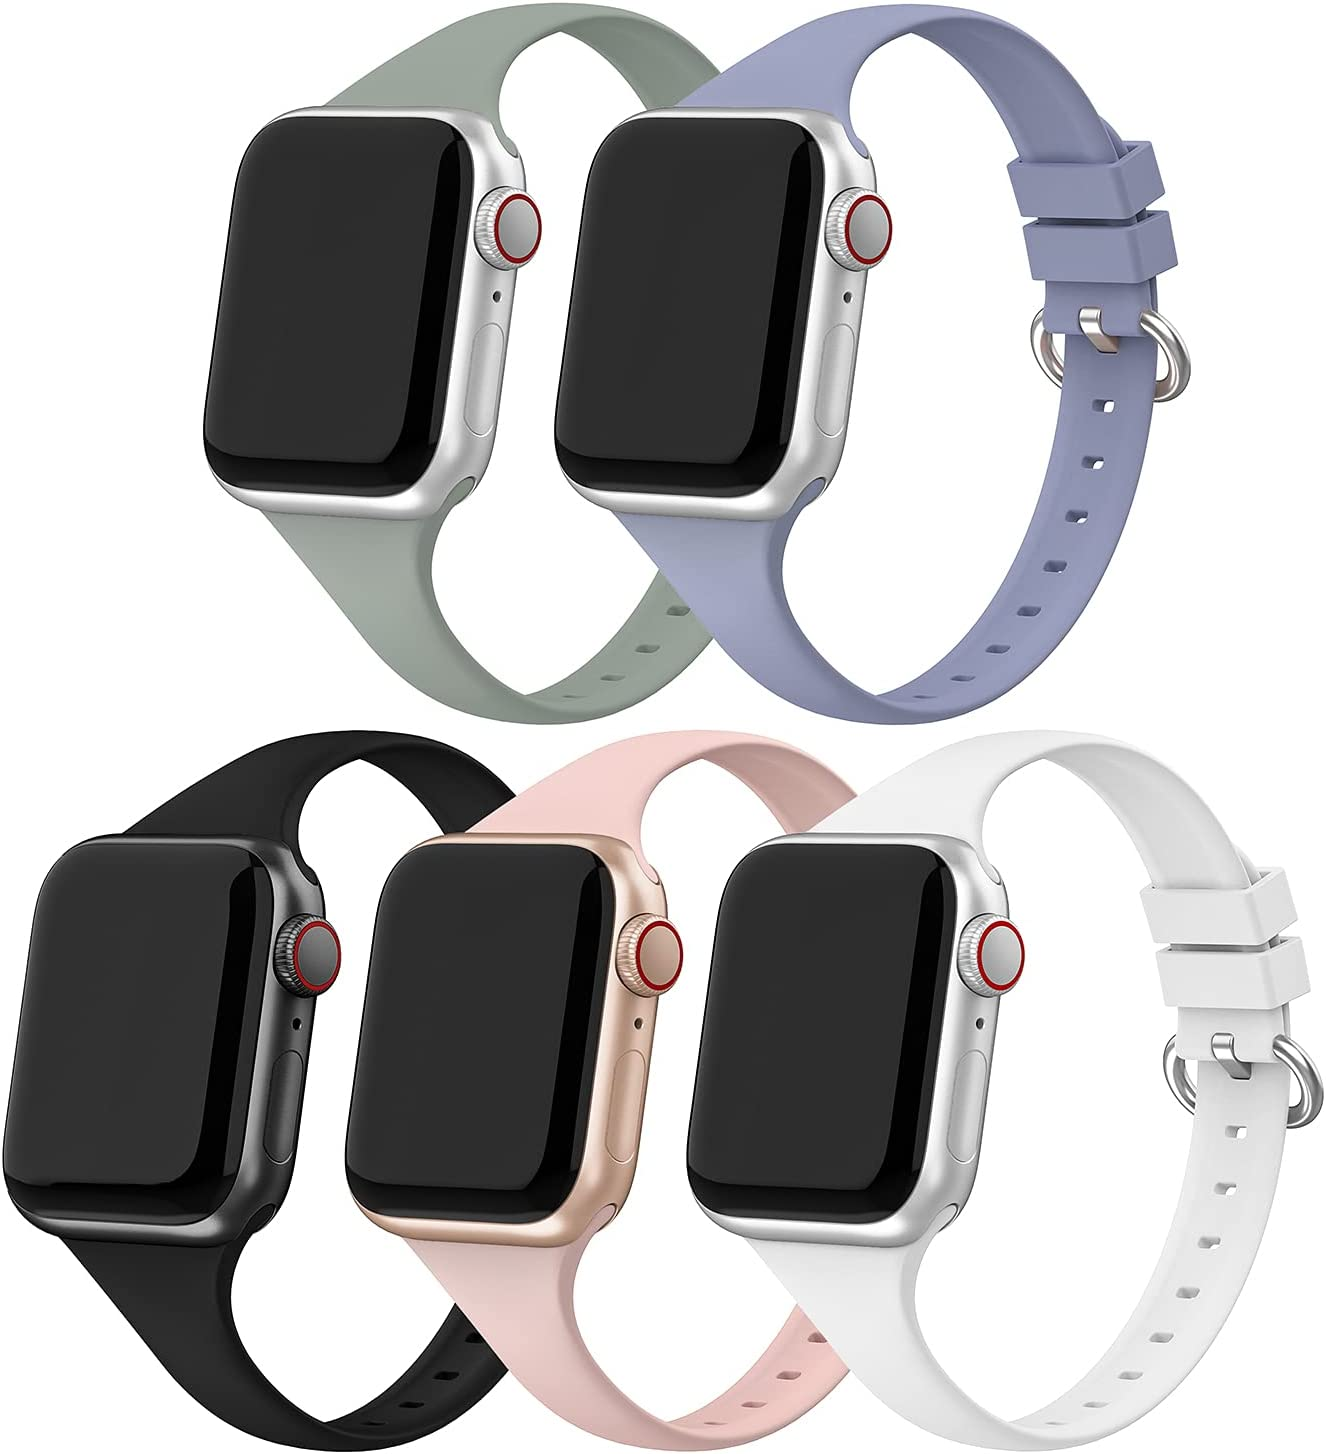 5 Pack Sport Band Compatible with Apple Watch 38mm 40mm,Narrow Soft Silicone Slim Thin Small Replacement Bands Strap Wristband Compatible for Apple Watch iWatch Series 6 5 4 3 2 1 SE Edition Women Men